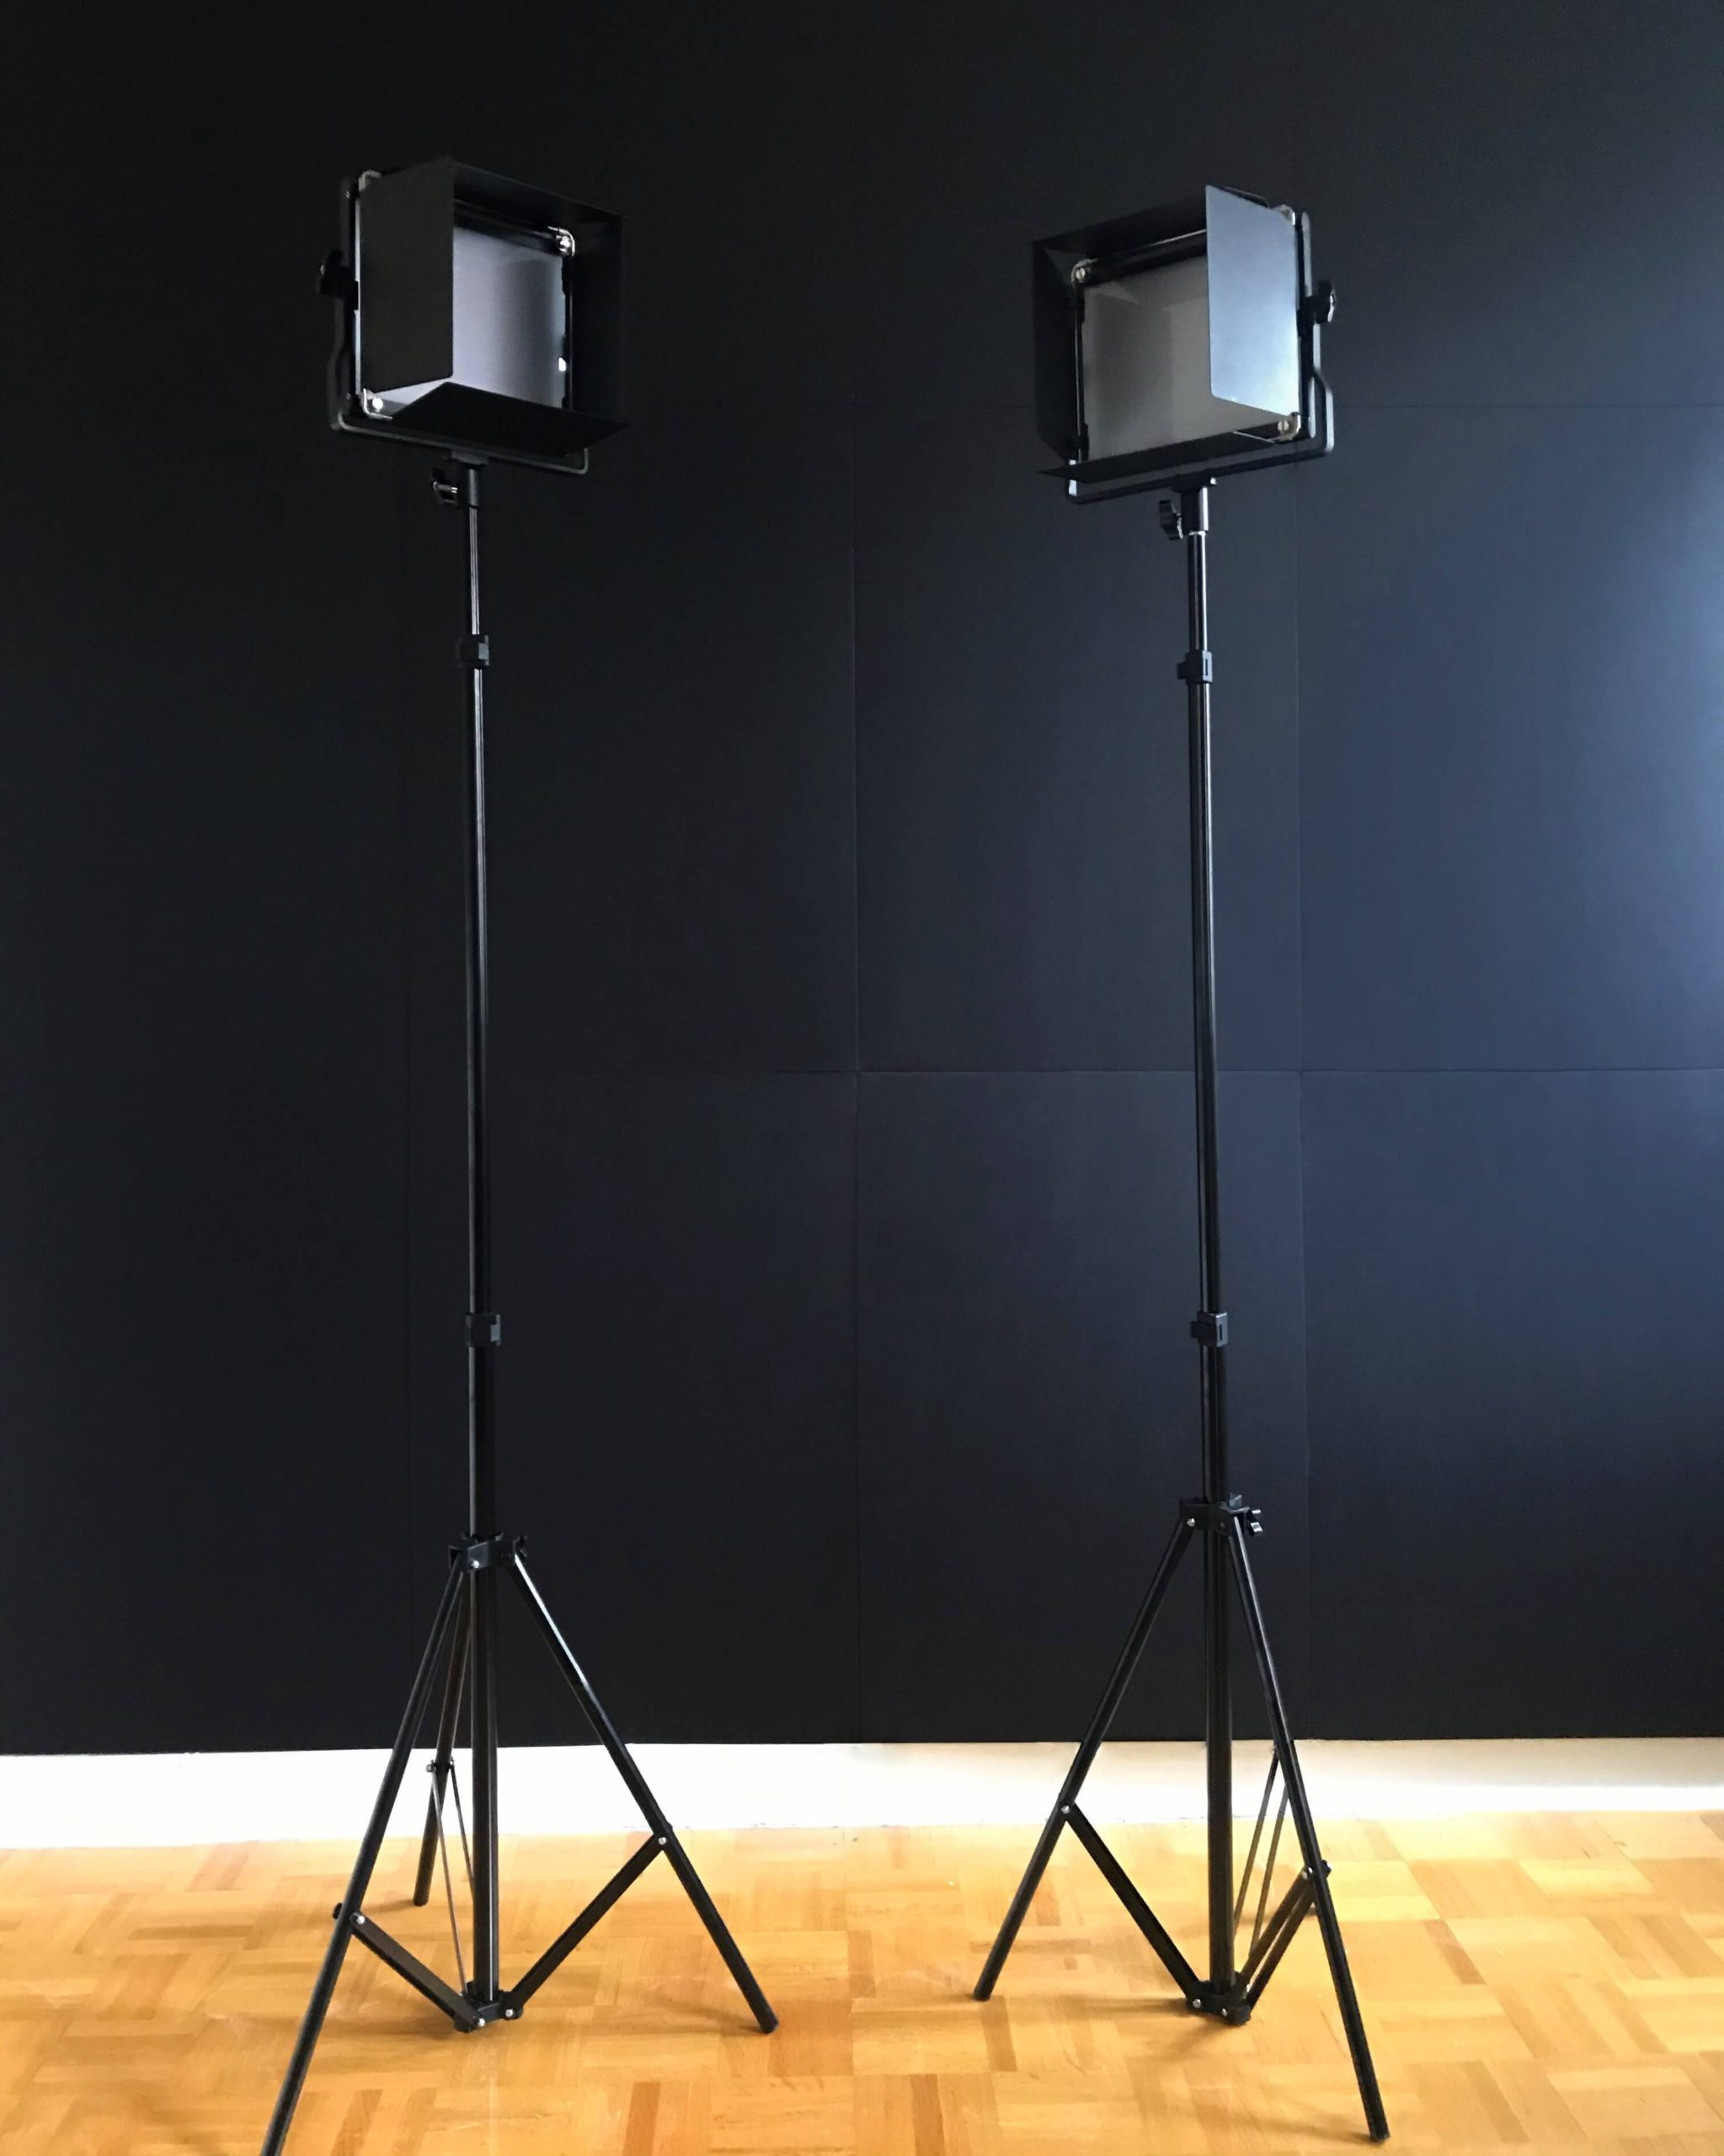 Lightboard presenter lights in front of the black backdrop panels